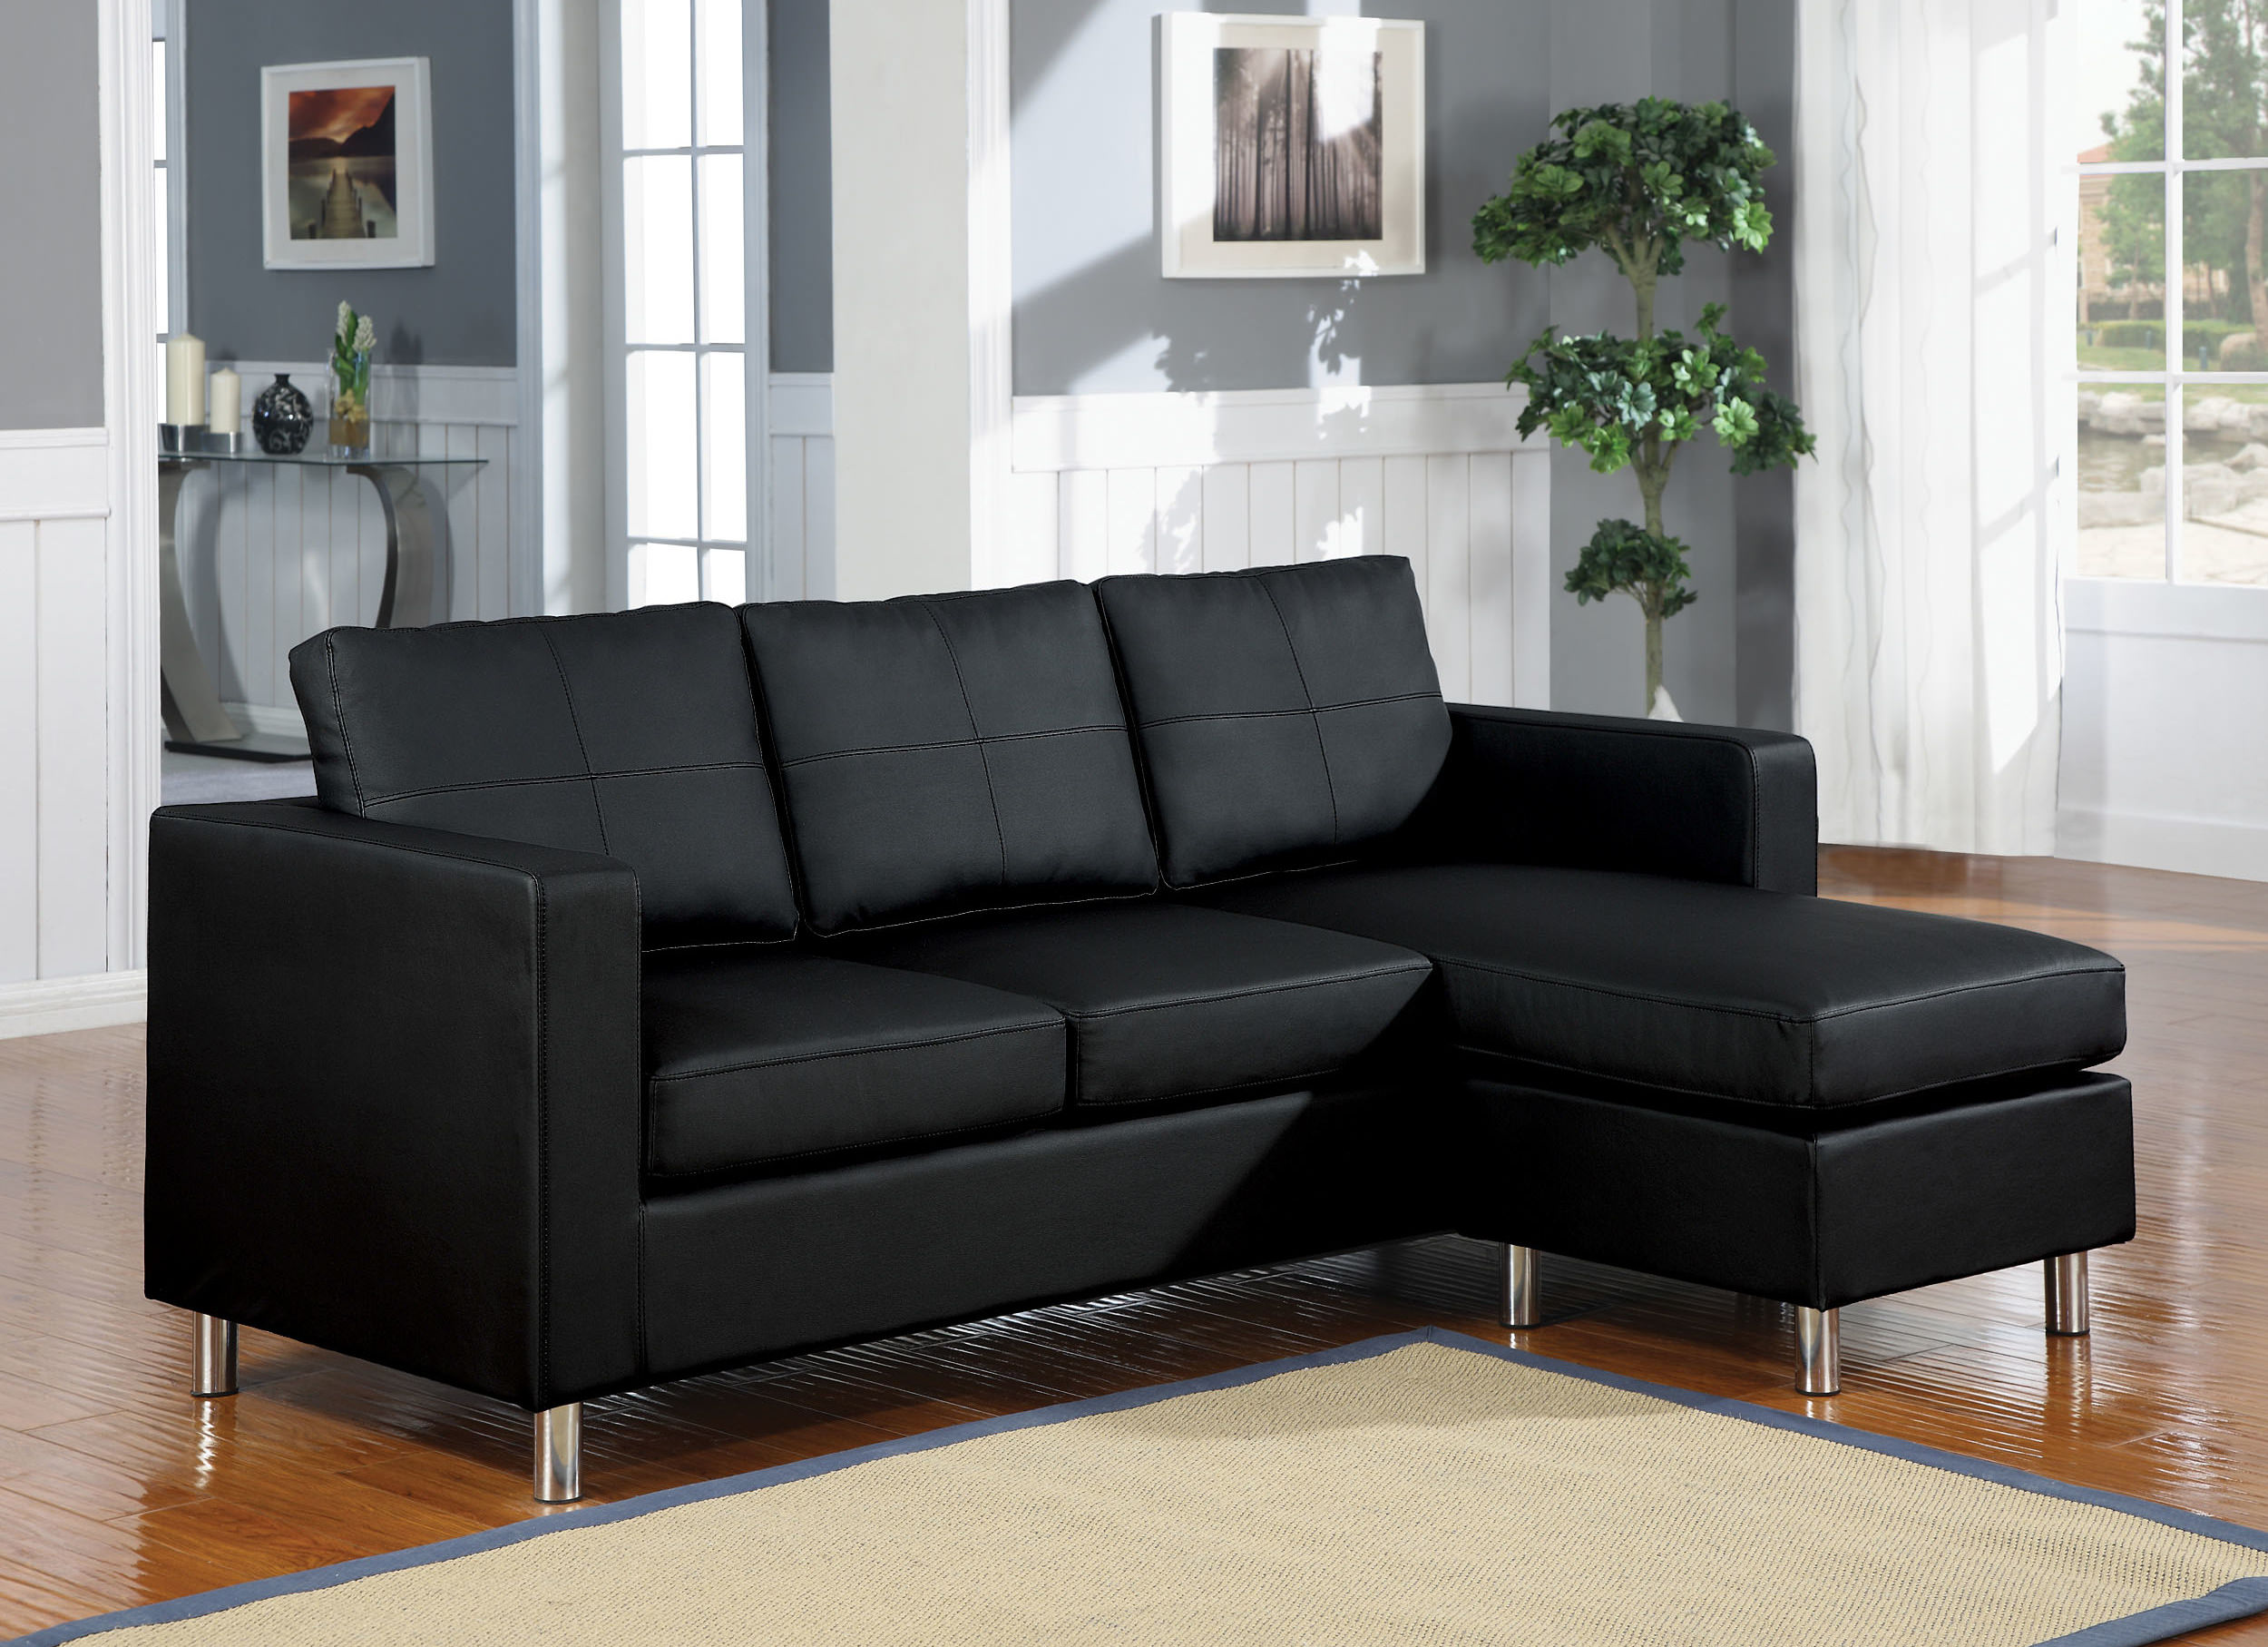 Kemen Modular Sectional Sofa